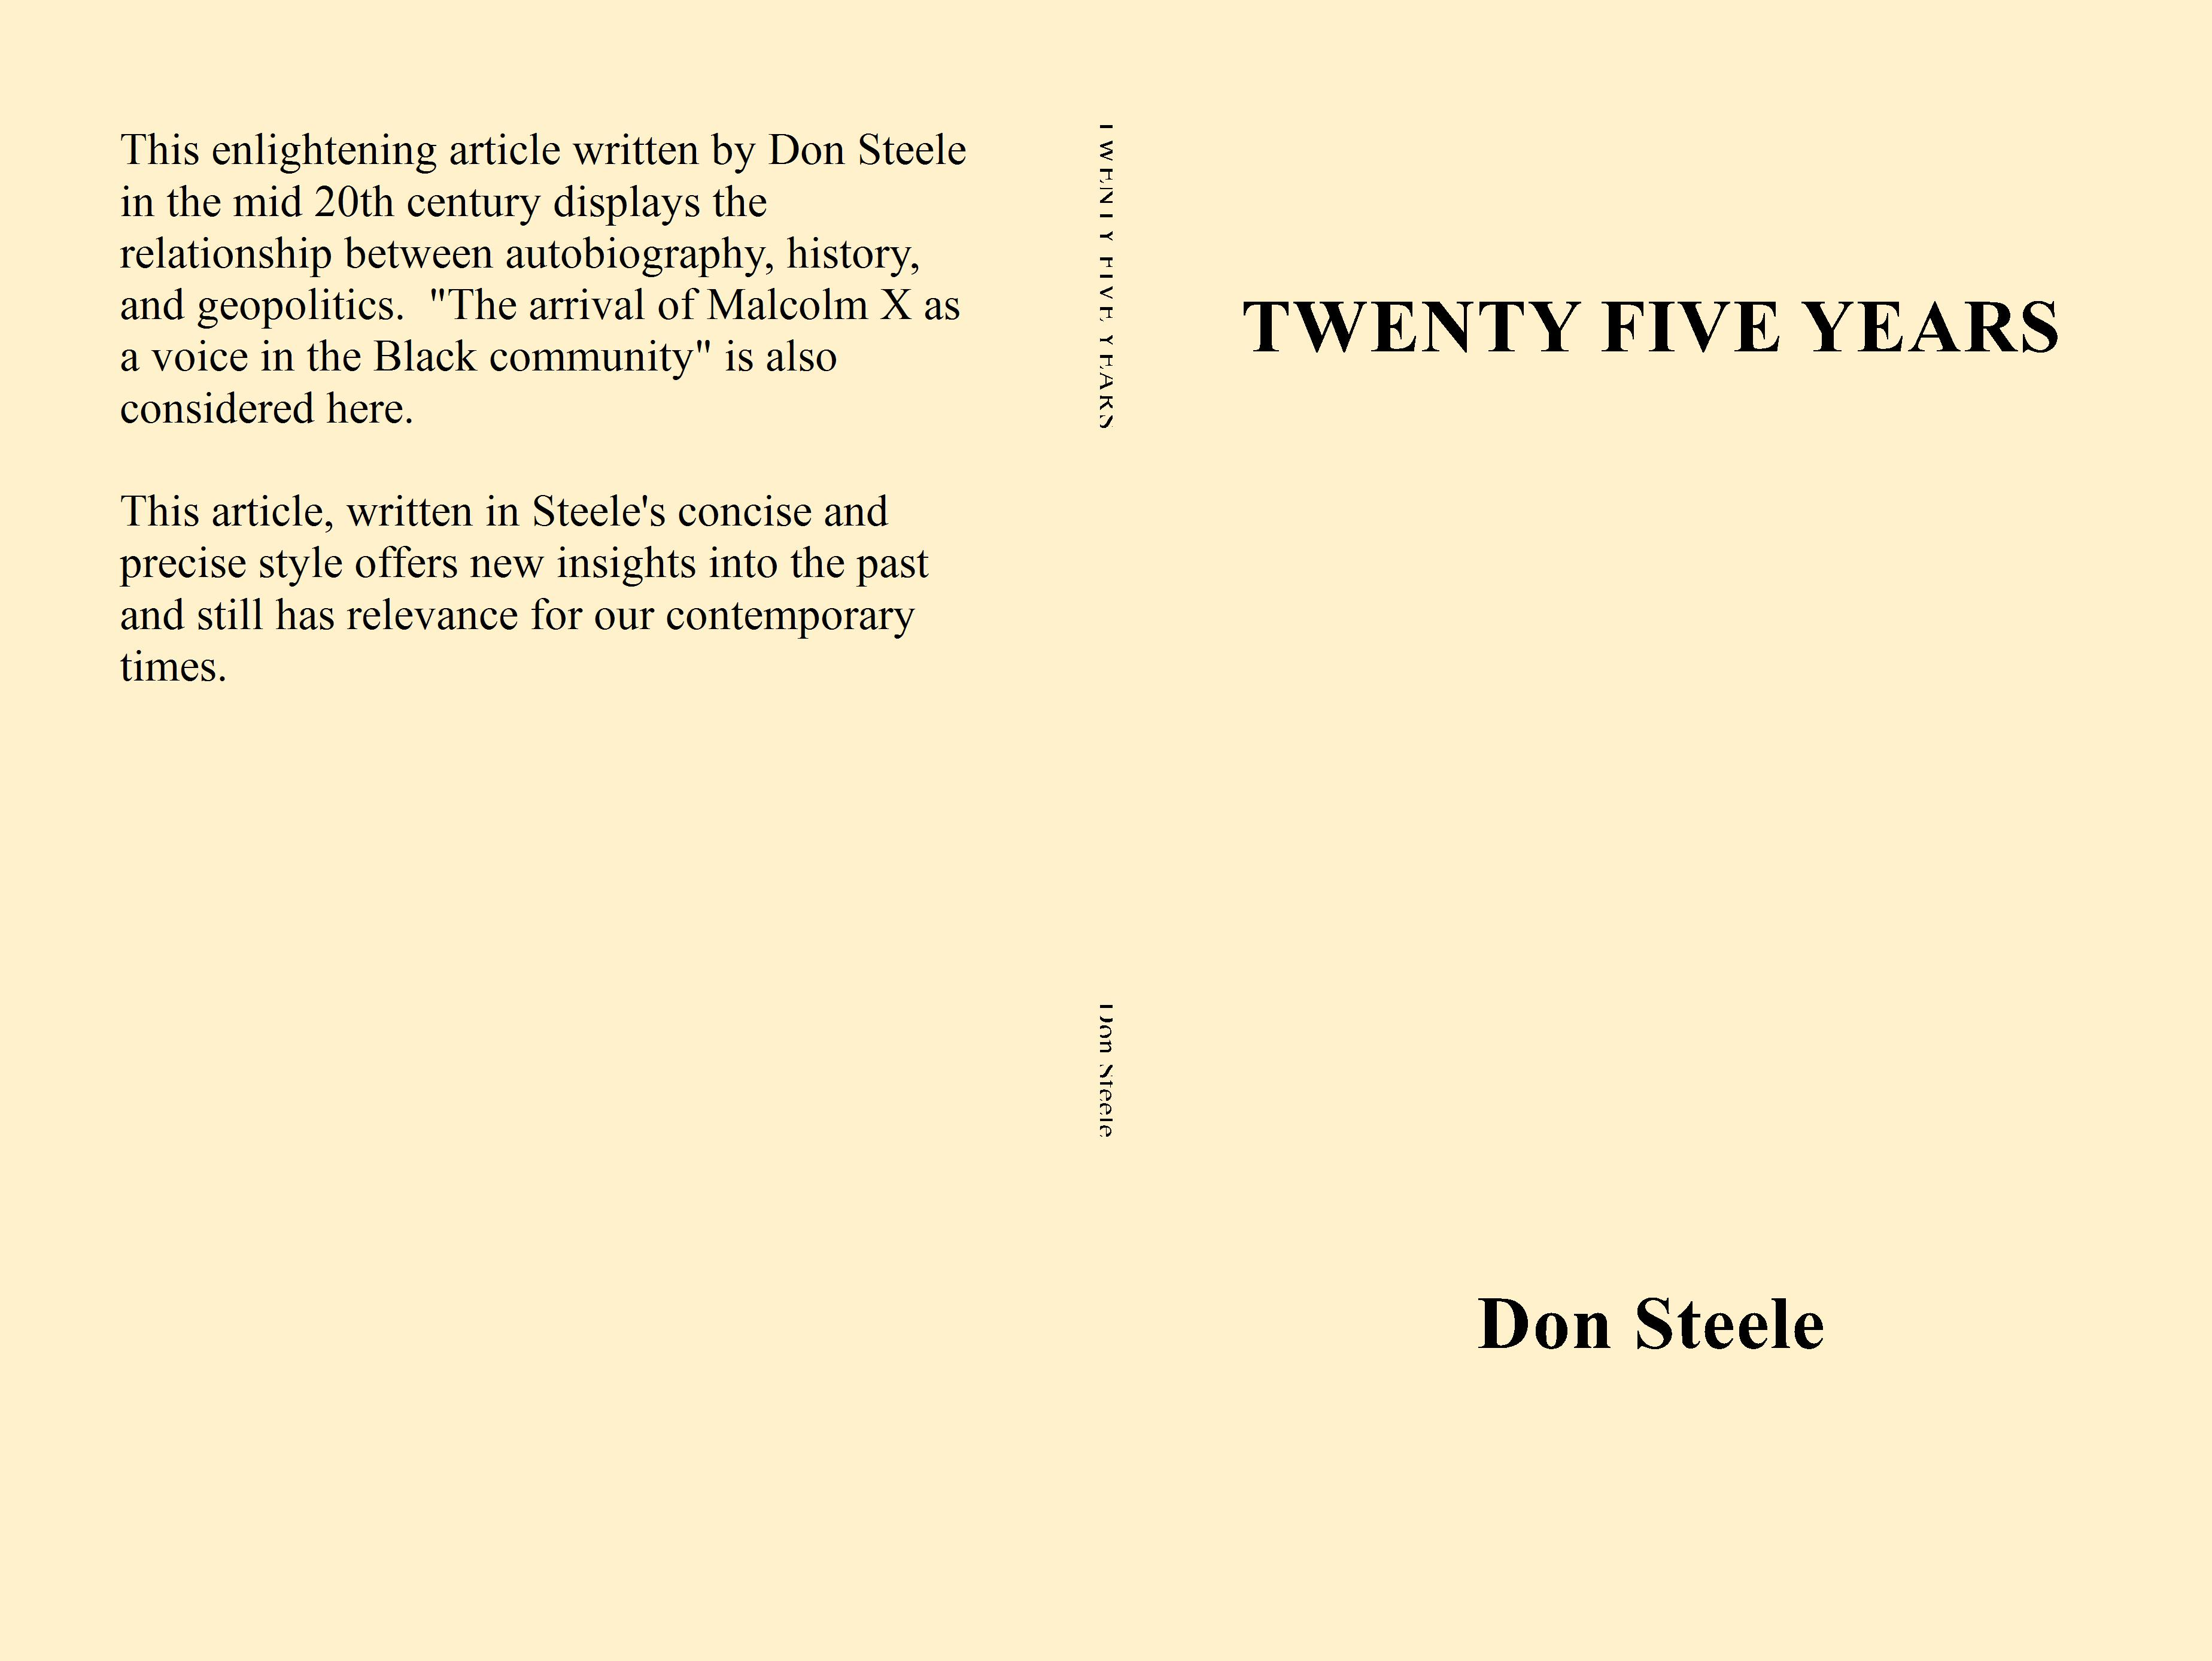 TWENTY FIVE YEARS cover image